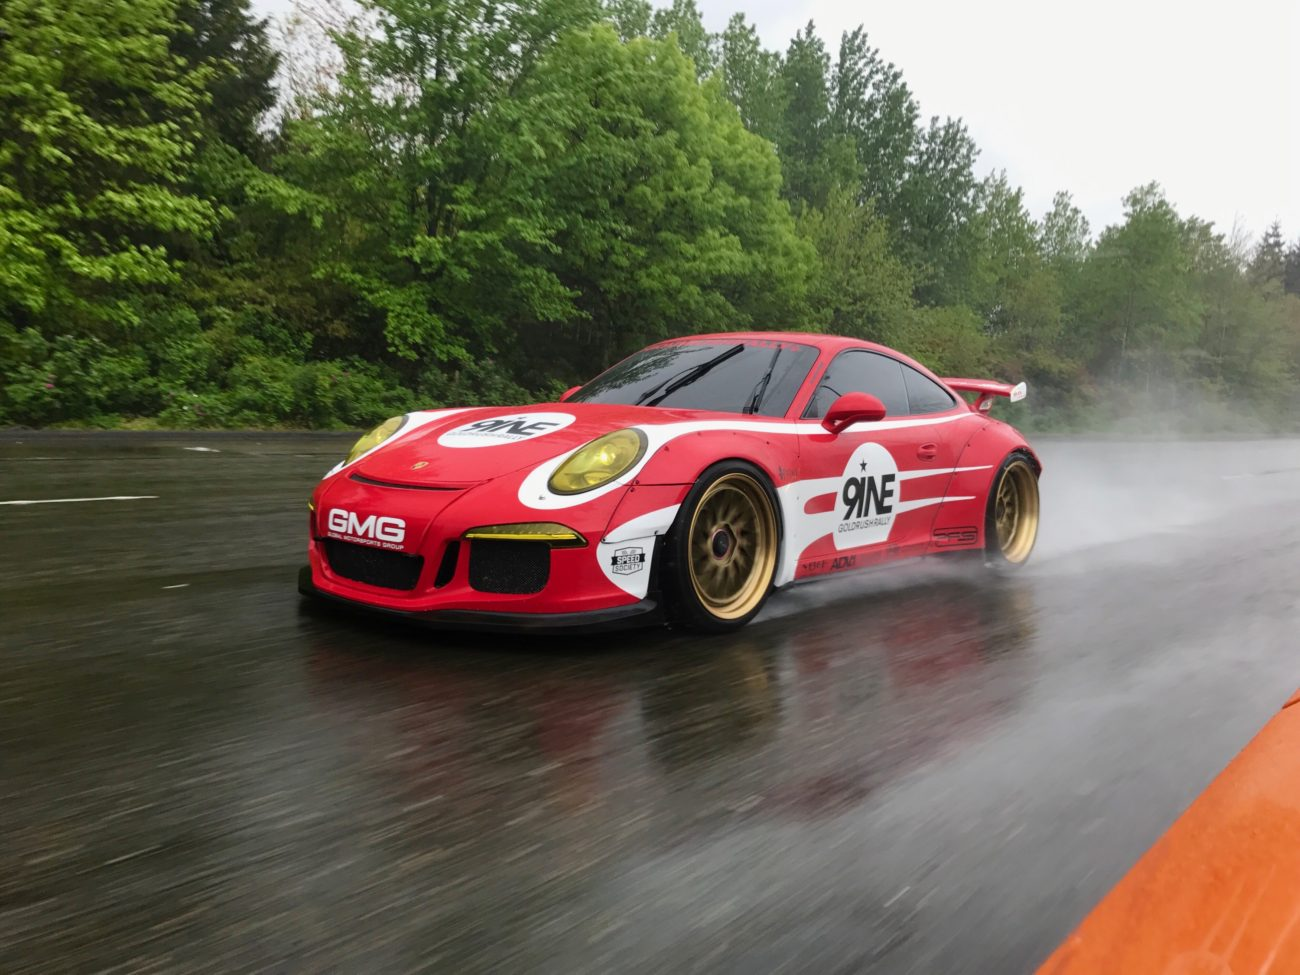 Platinum Motor Cars Detroit Libertywalk Widebody Porsche GT3 on GoldRush Rally 9